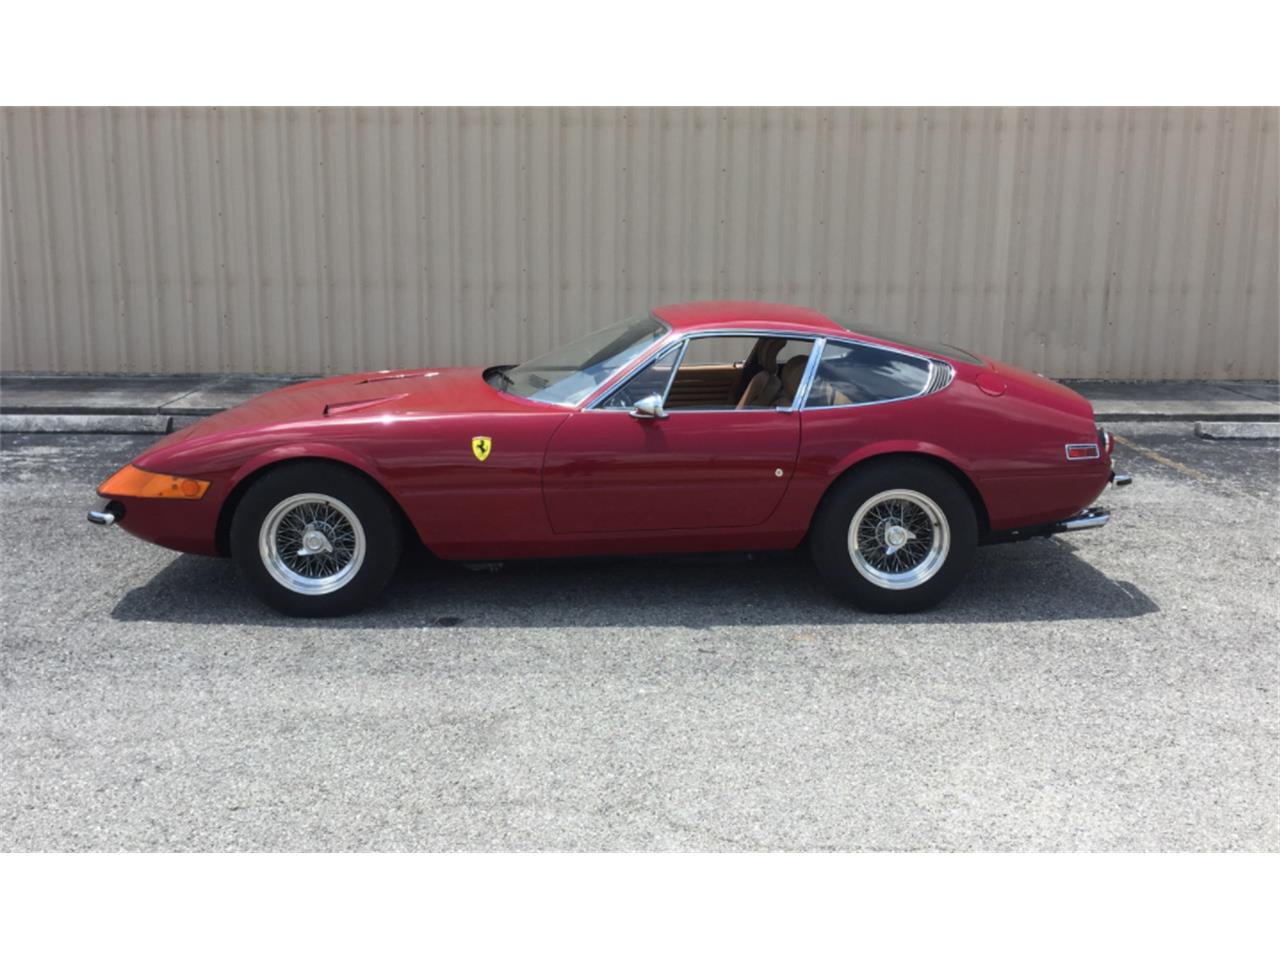 Large Picture of '72 365 GTB located in Fort myers Florida - $645,000.00 - L3N2